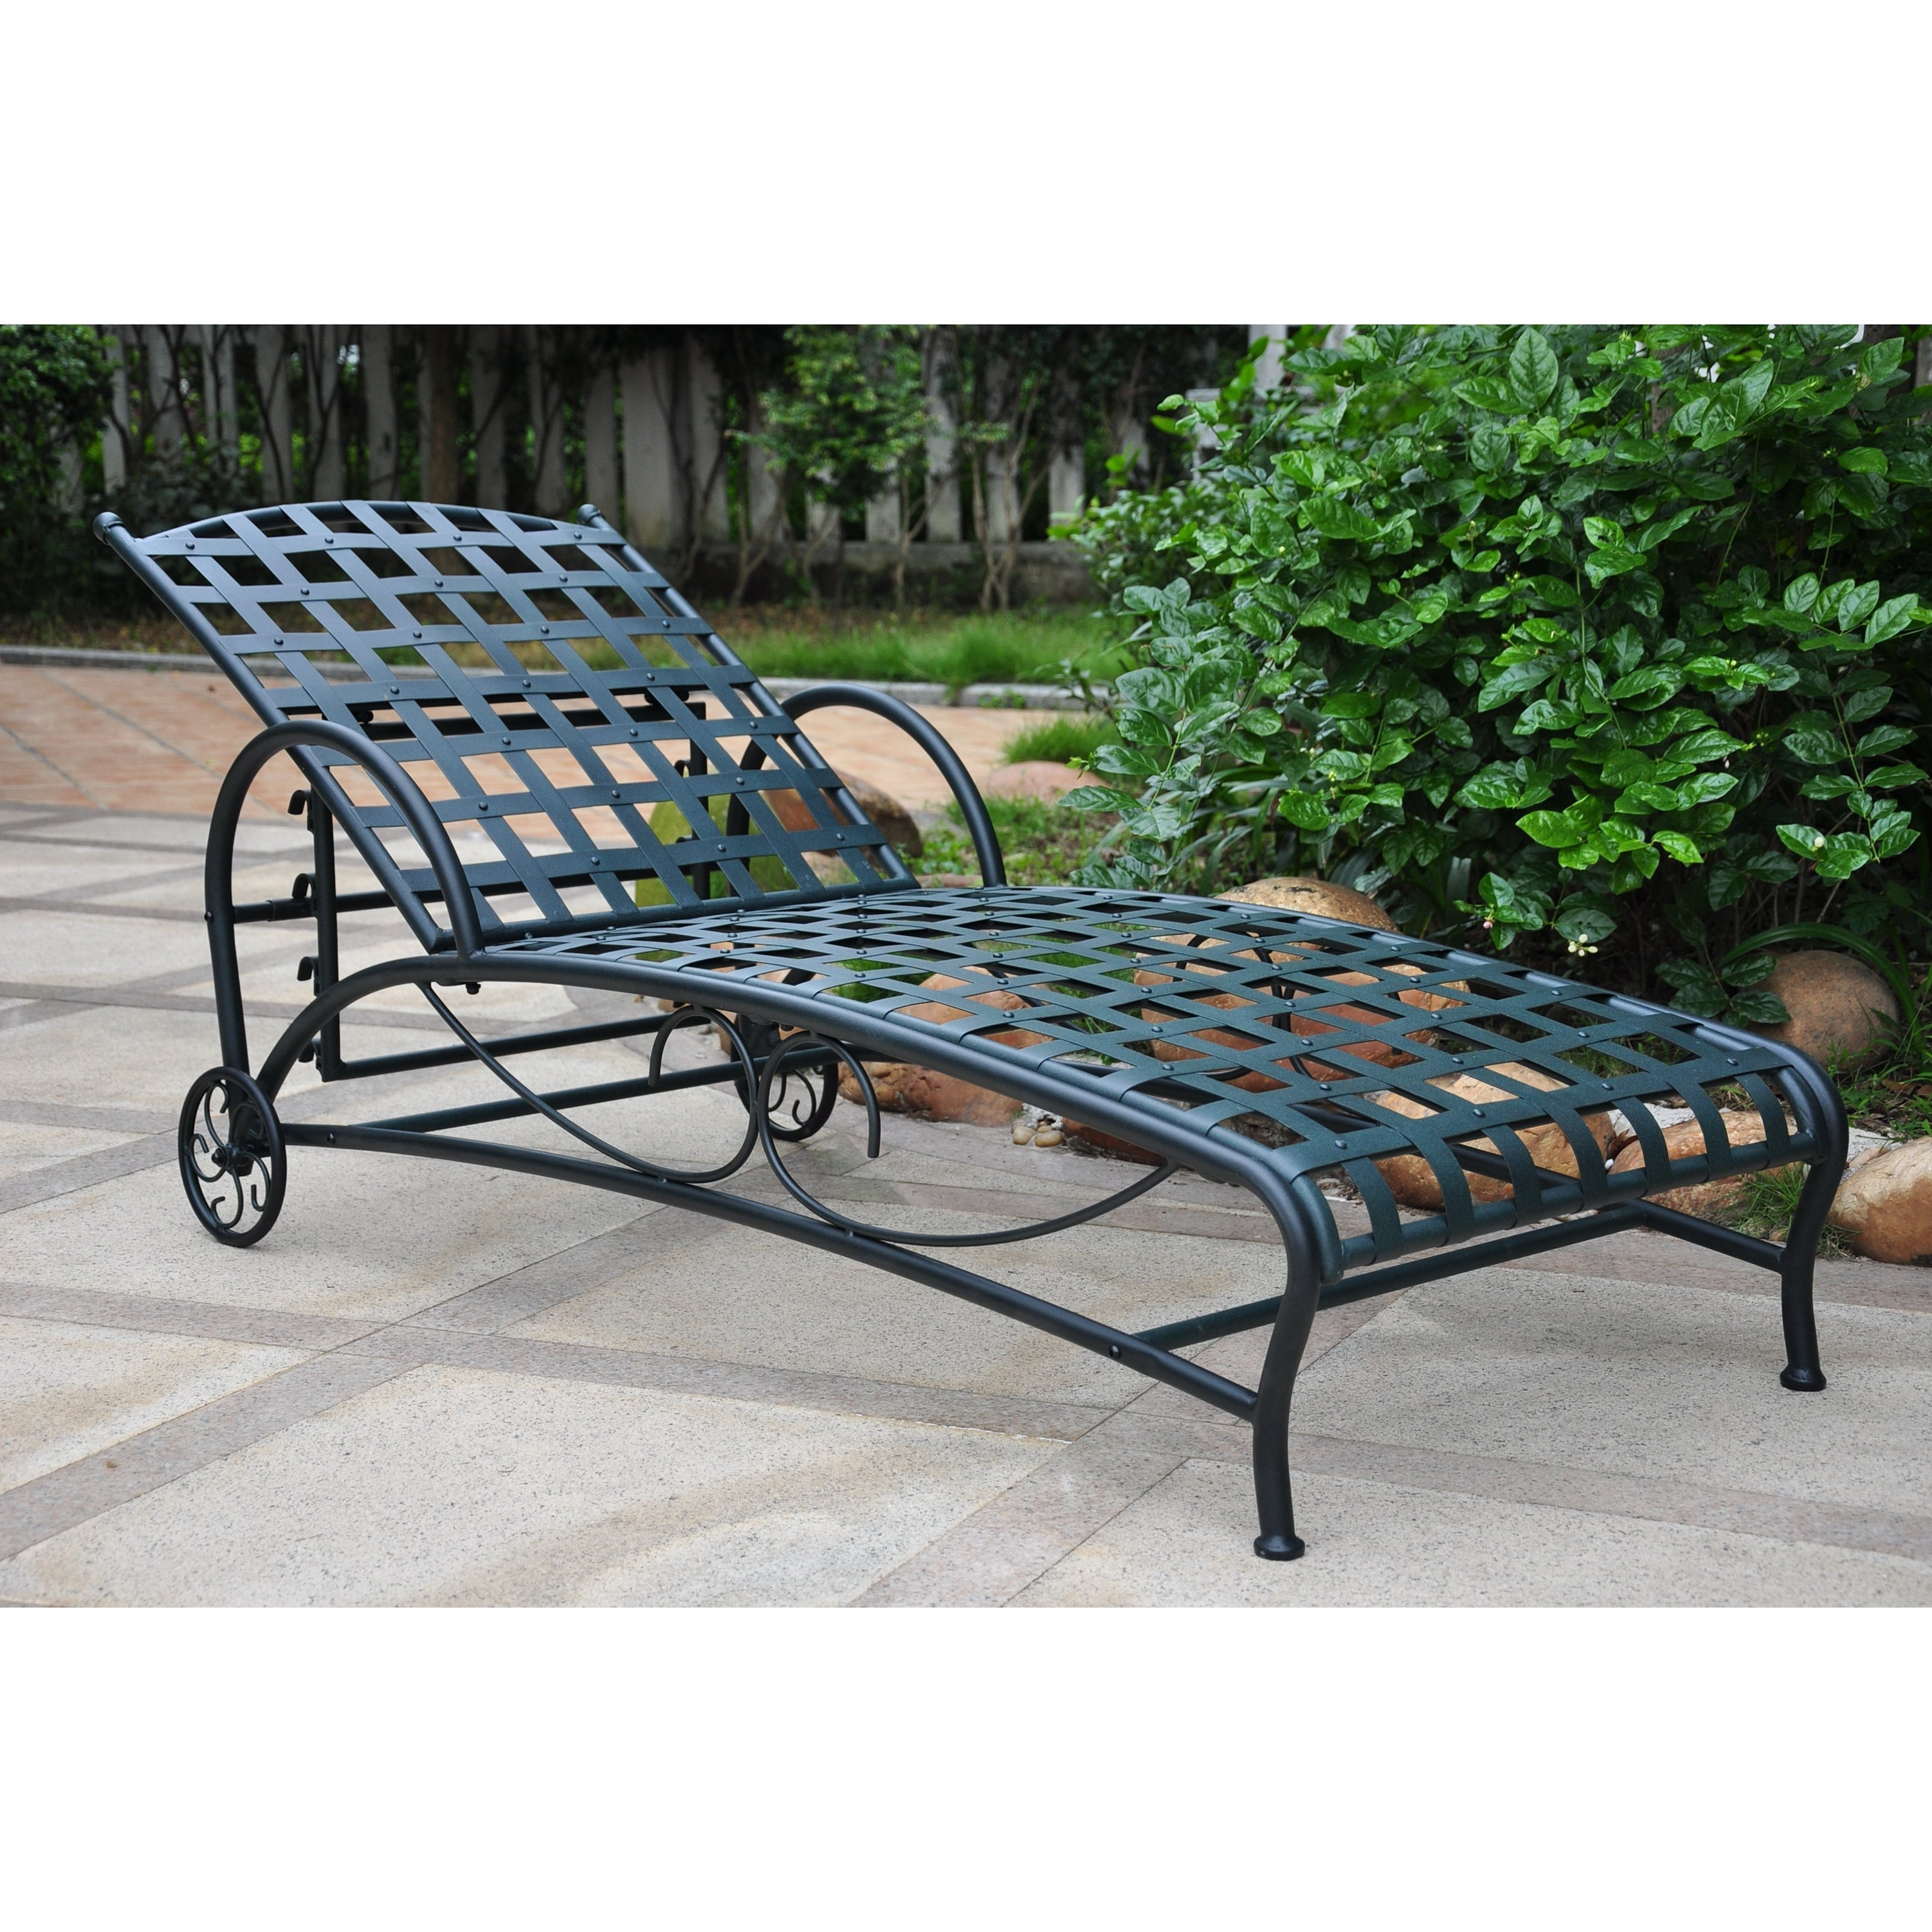 Wrought Iron Chaise Lounge Chairs In Most Popular Wrought Iron Chaise Lounge Chairs Outdoor • Lounge Chairs Ideas (View 13 of 15)